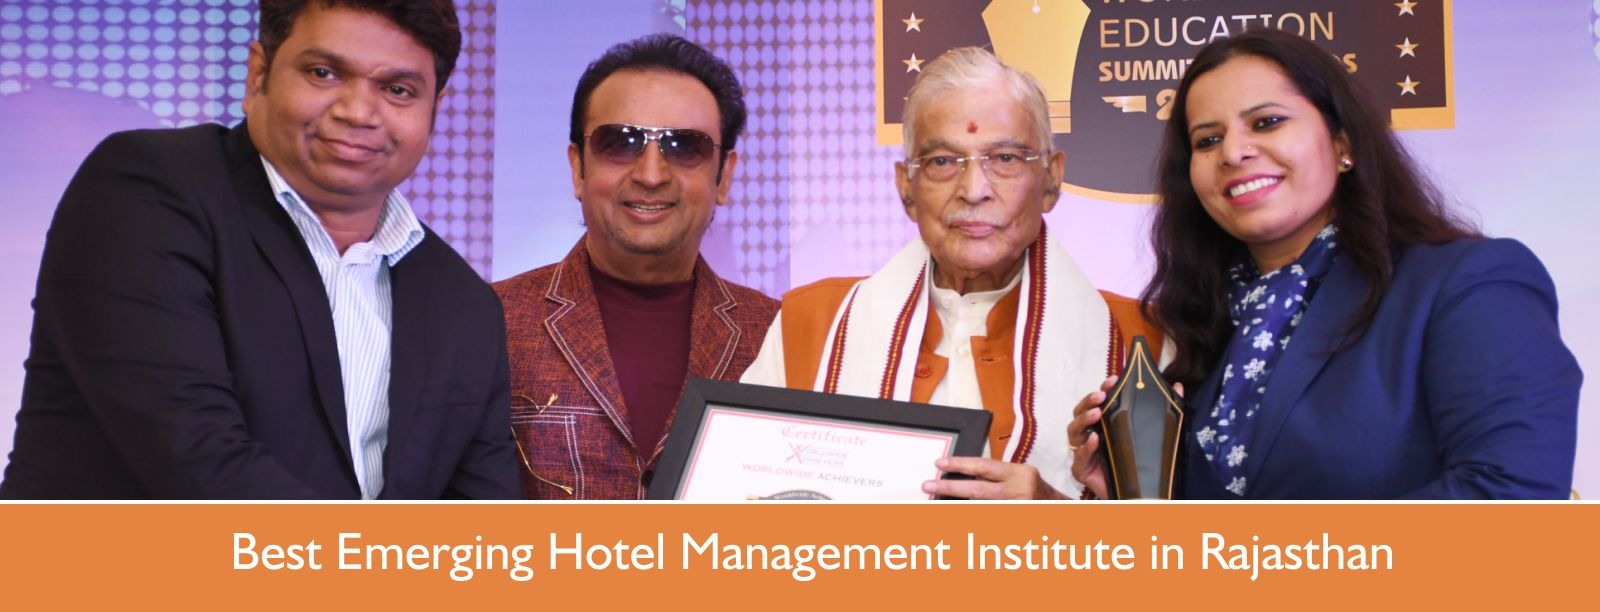 Best Emerging Hotel Management Institute in Rajasthan